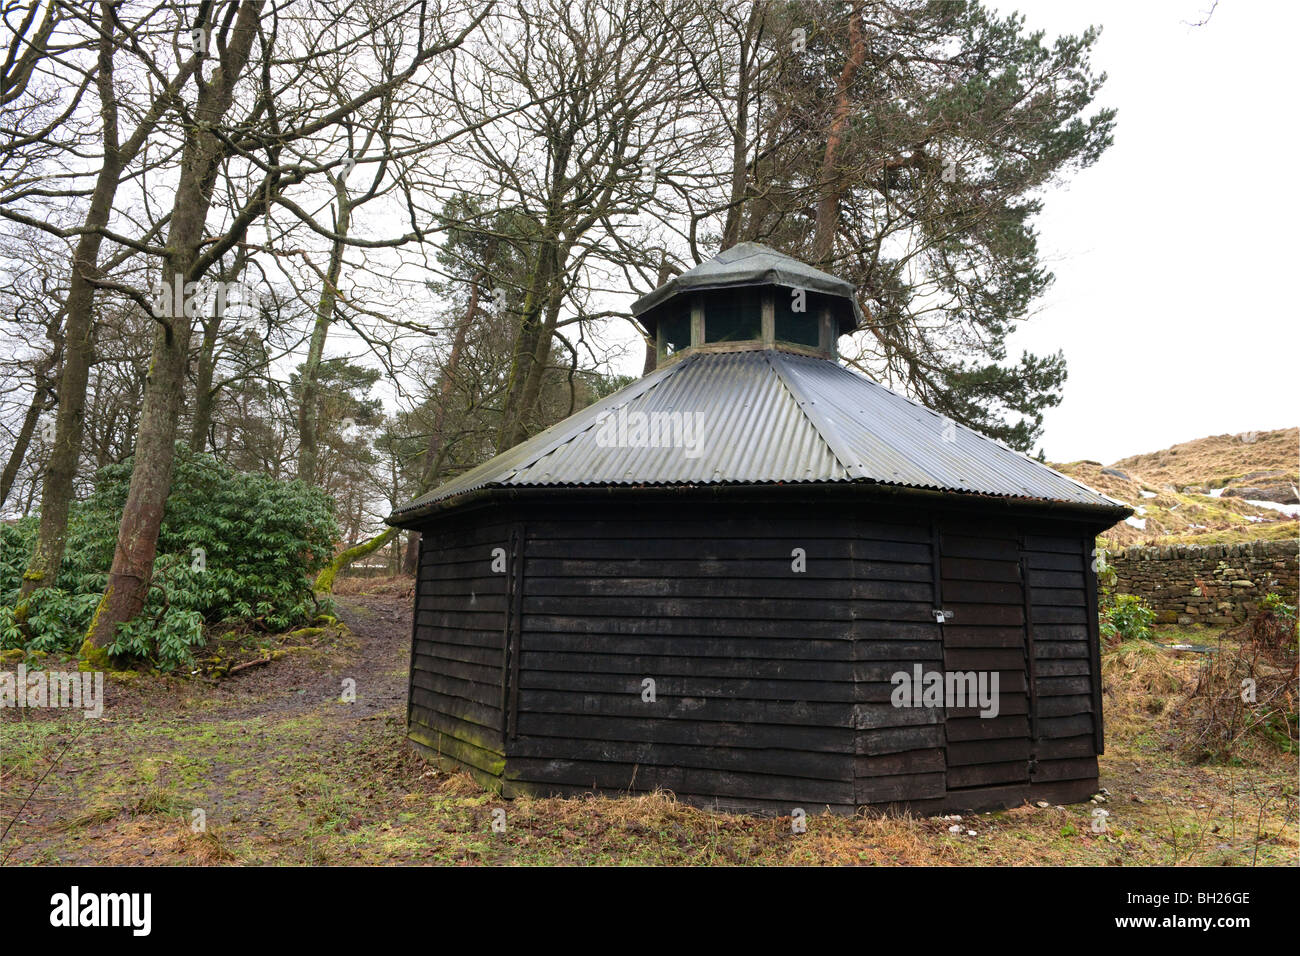 Hexagonal wooden and corrugated roofed woodland vented shed - Stock Image